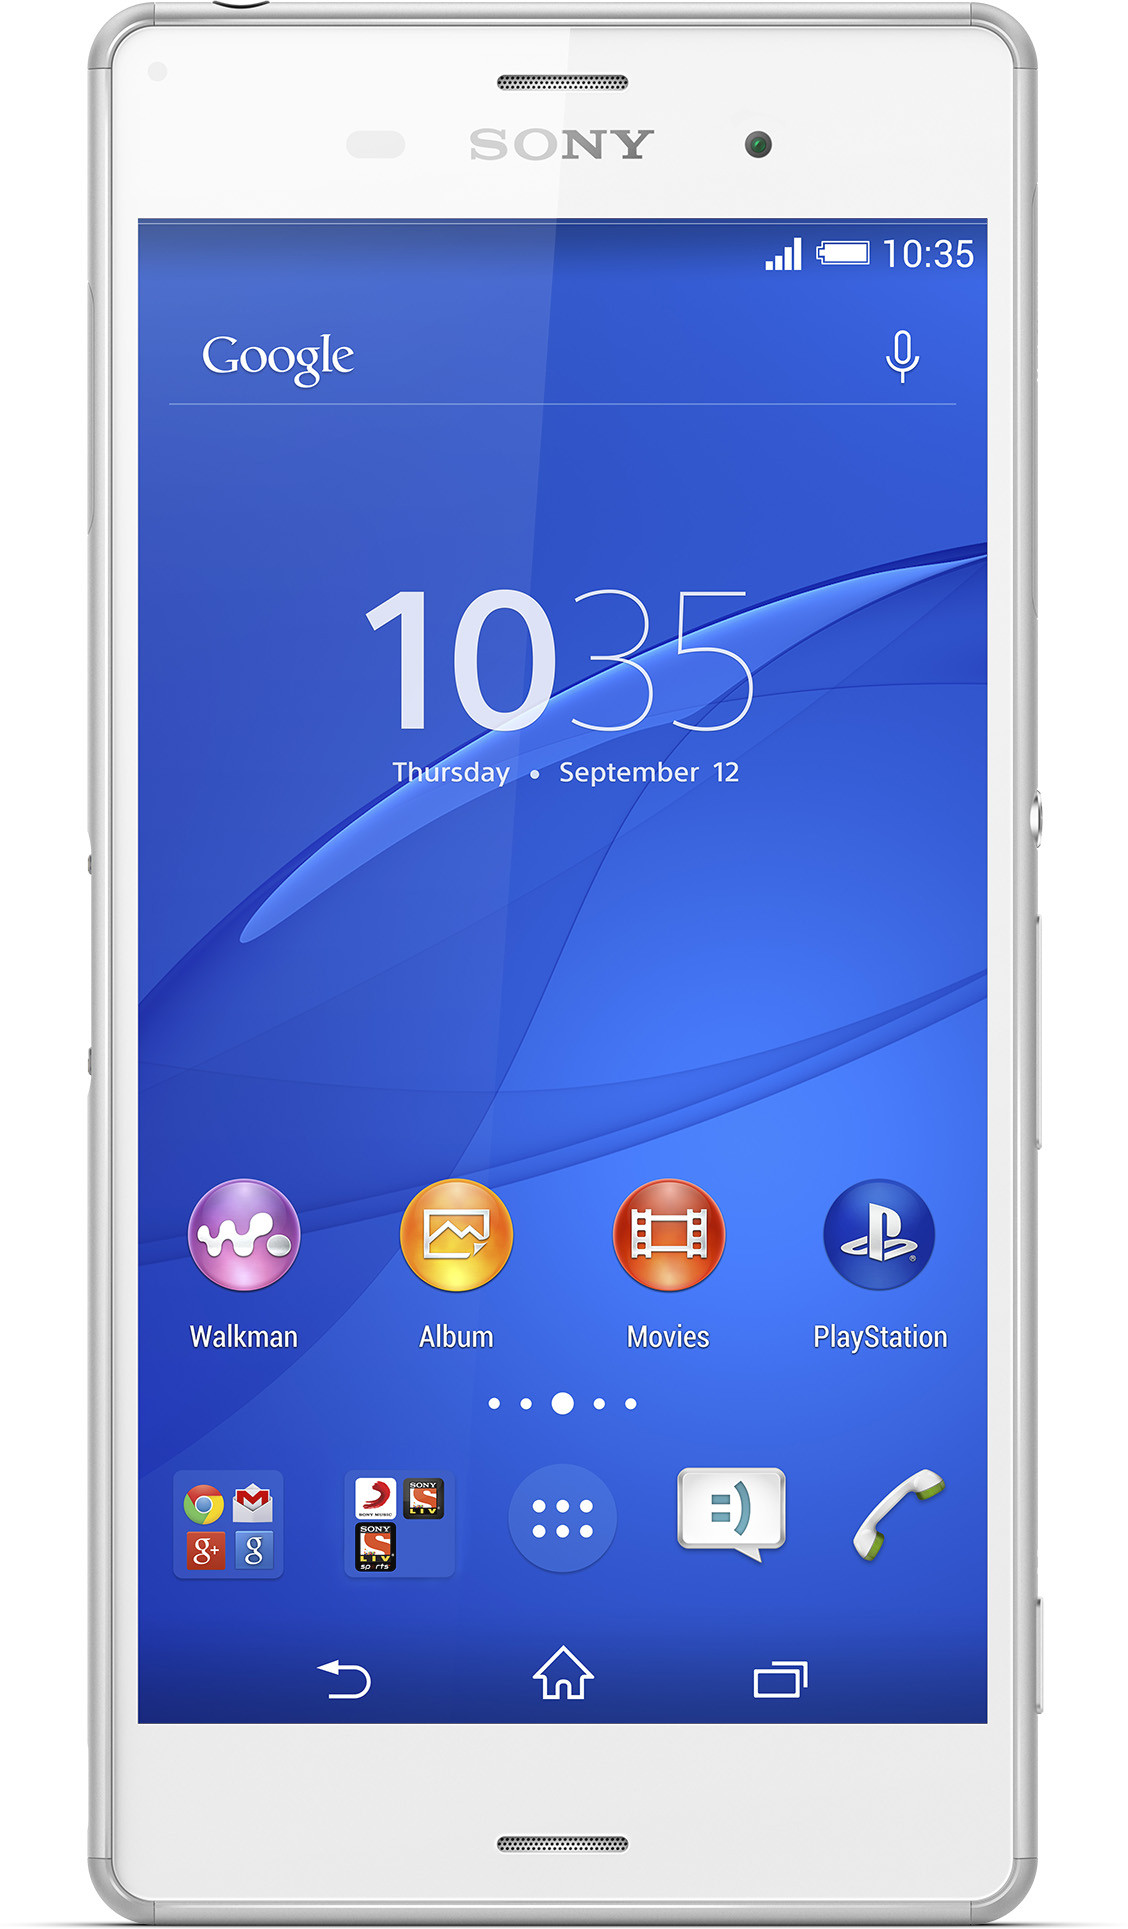 Sony D6633 Device Specifications